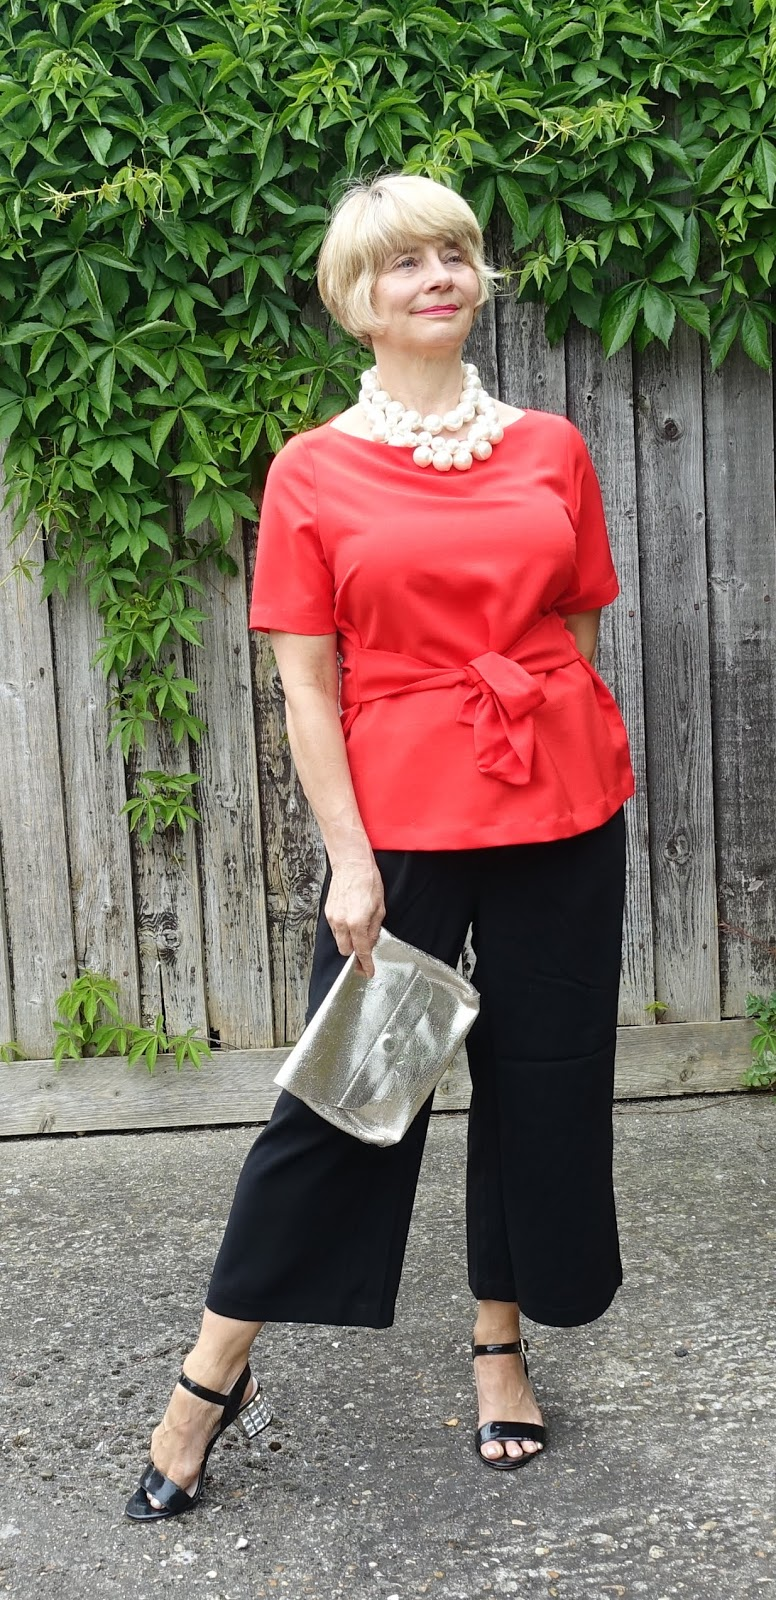 Is This Mutton? blog for the over-45s shows how to style wide black cropped trousers/pants for a work or evening look